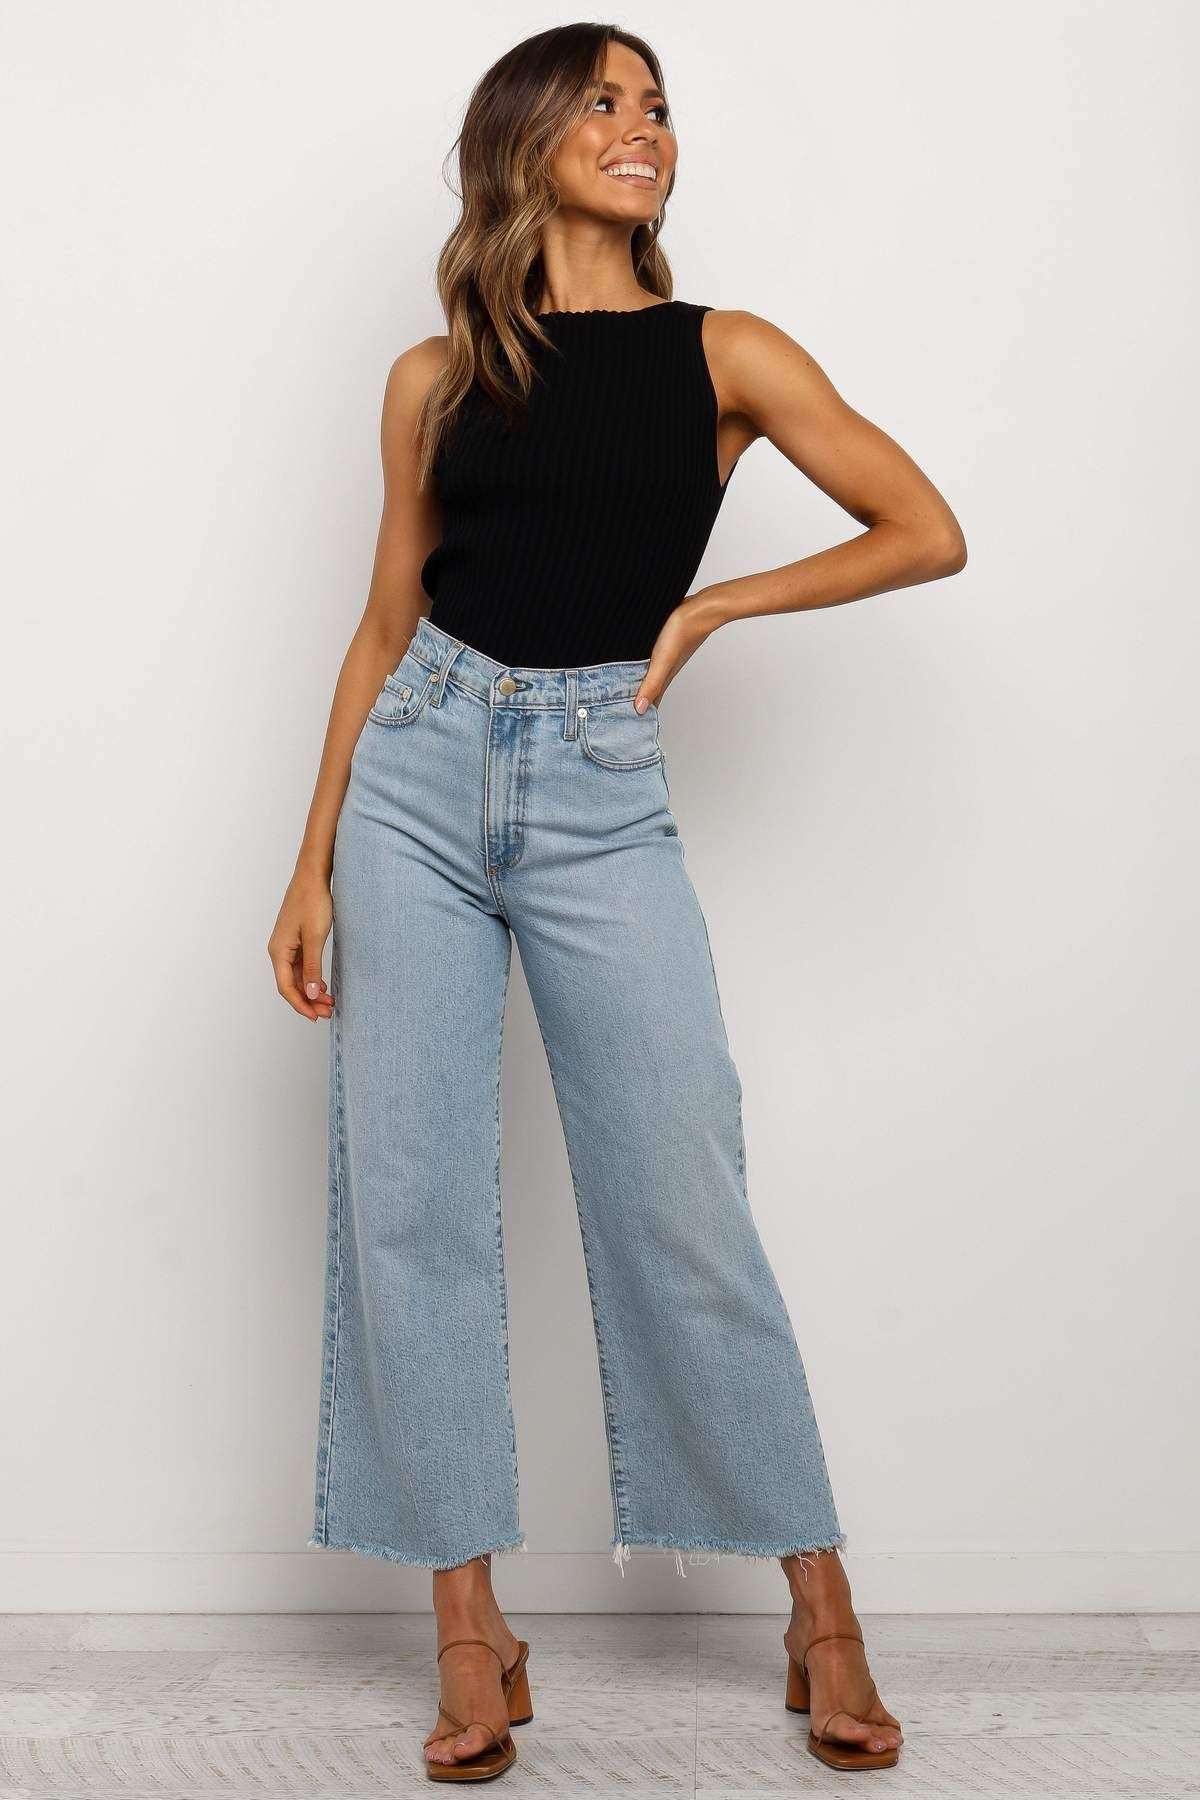 Jeans For Women Plus Size Stores Near Me Tall Wide Leg Trousers Petite Occasion Dresses Casual Long Skirt Outfits